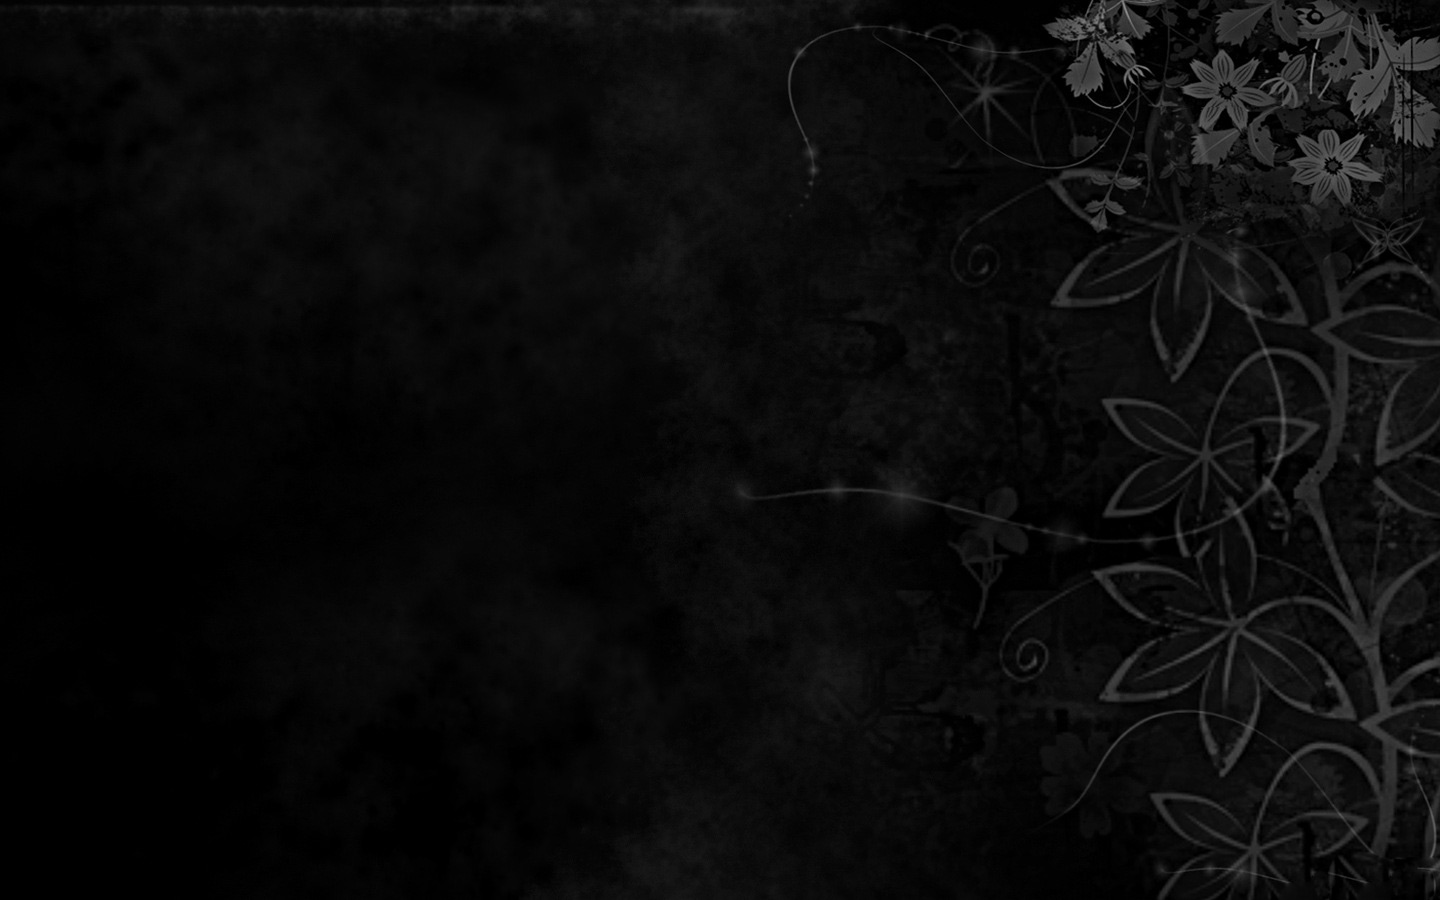 Collection of Dark Backgrounds Wallpapers on HDWallpapers